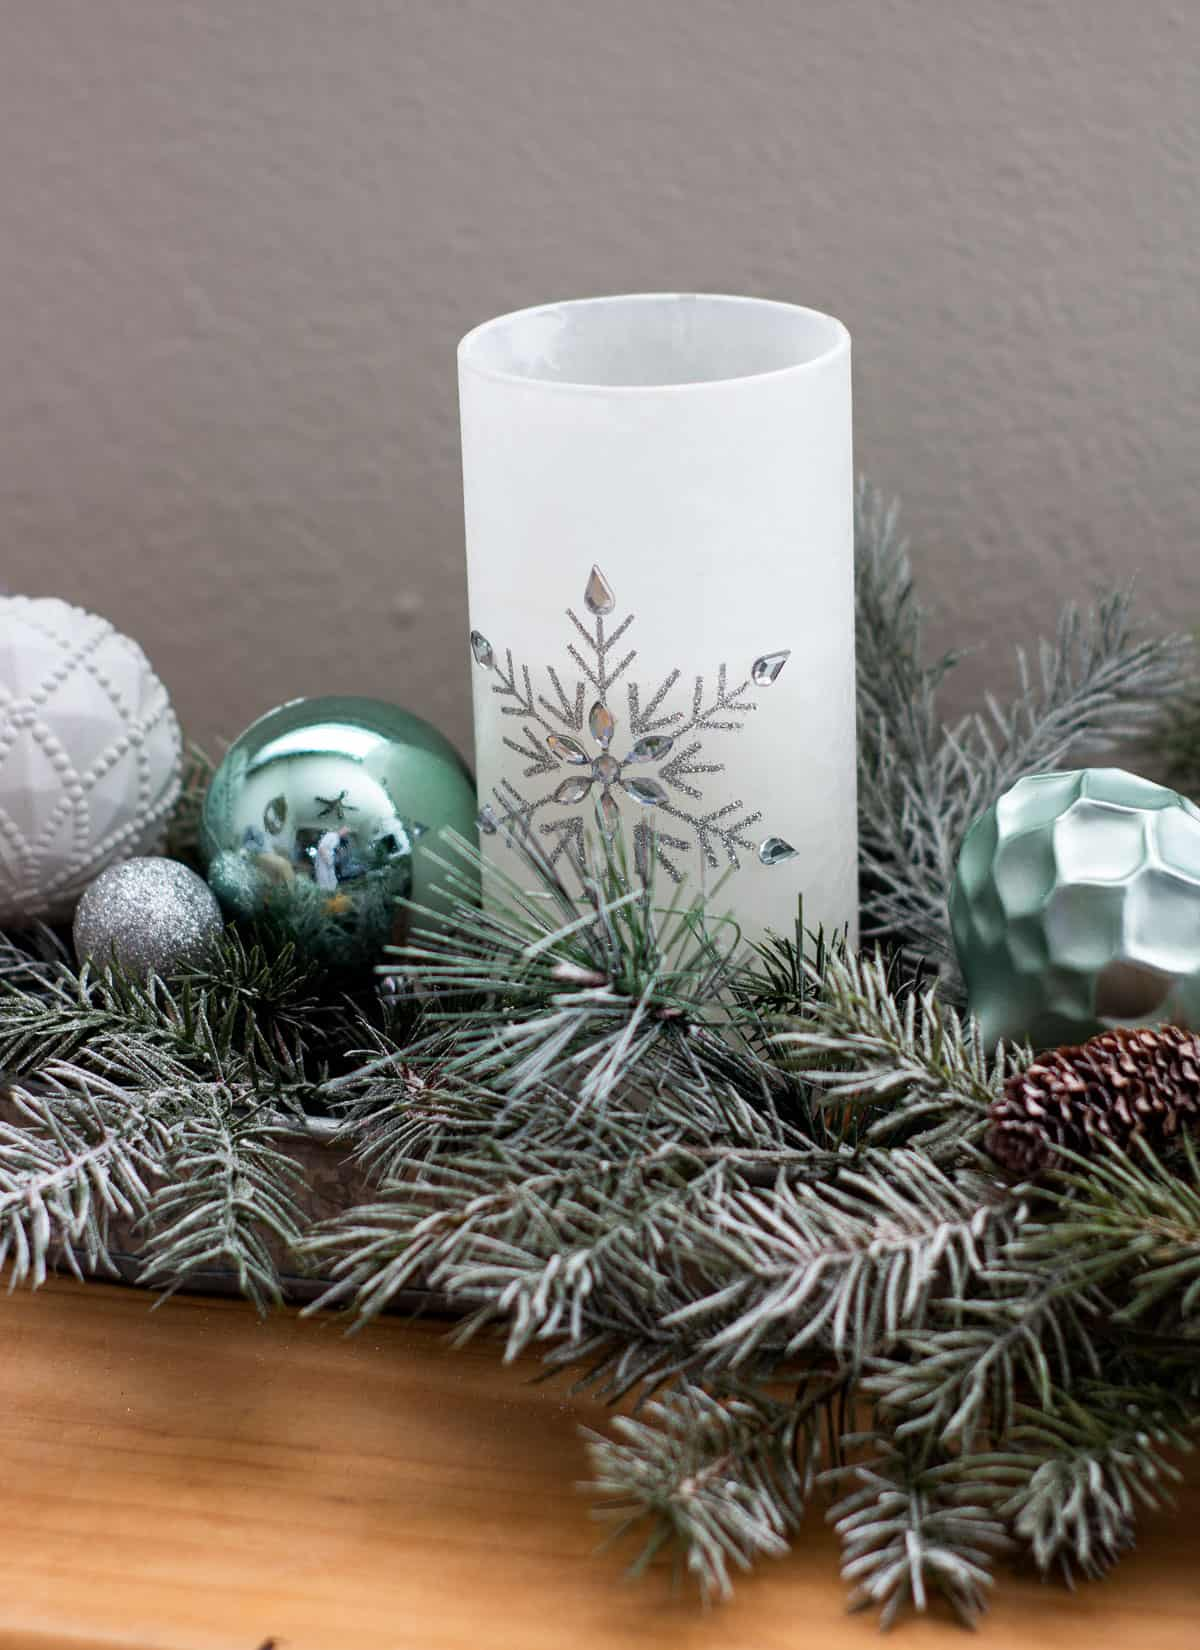 frosty christmas tiny home tour candles with greenery and ornaments on wood bench